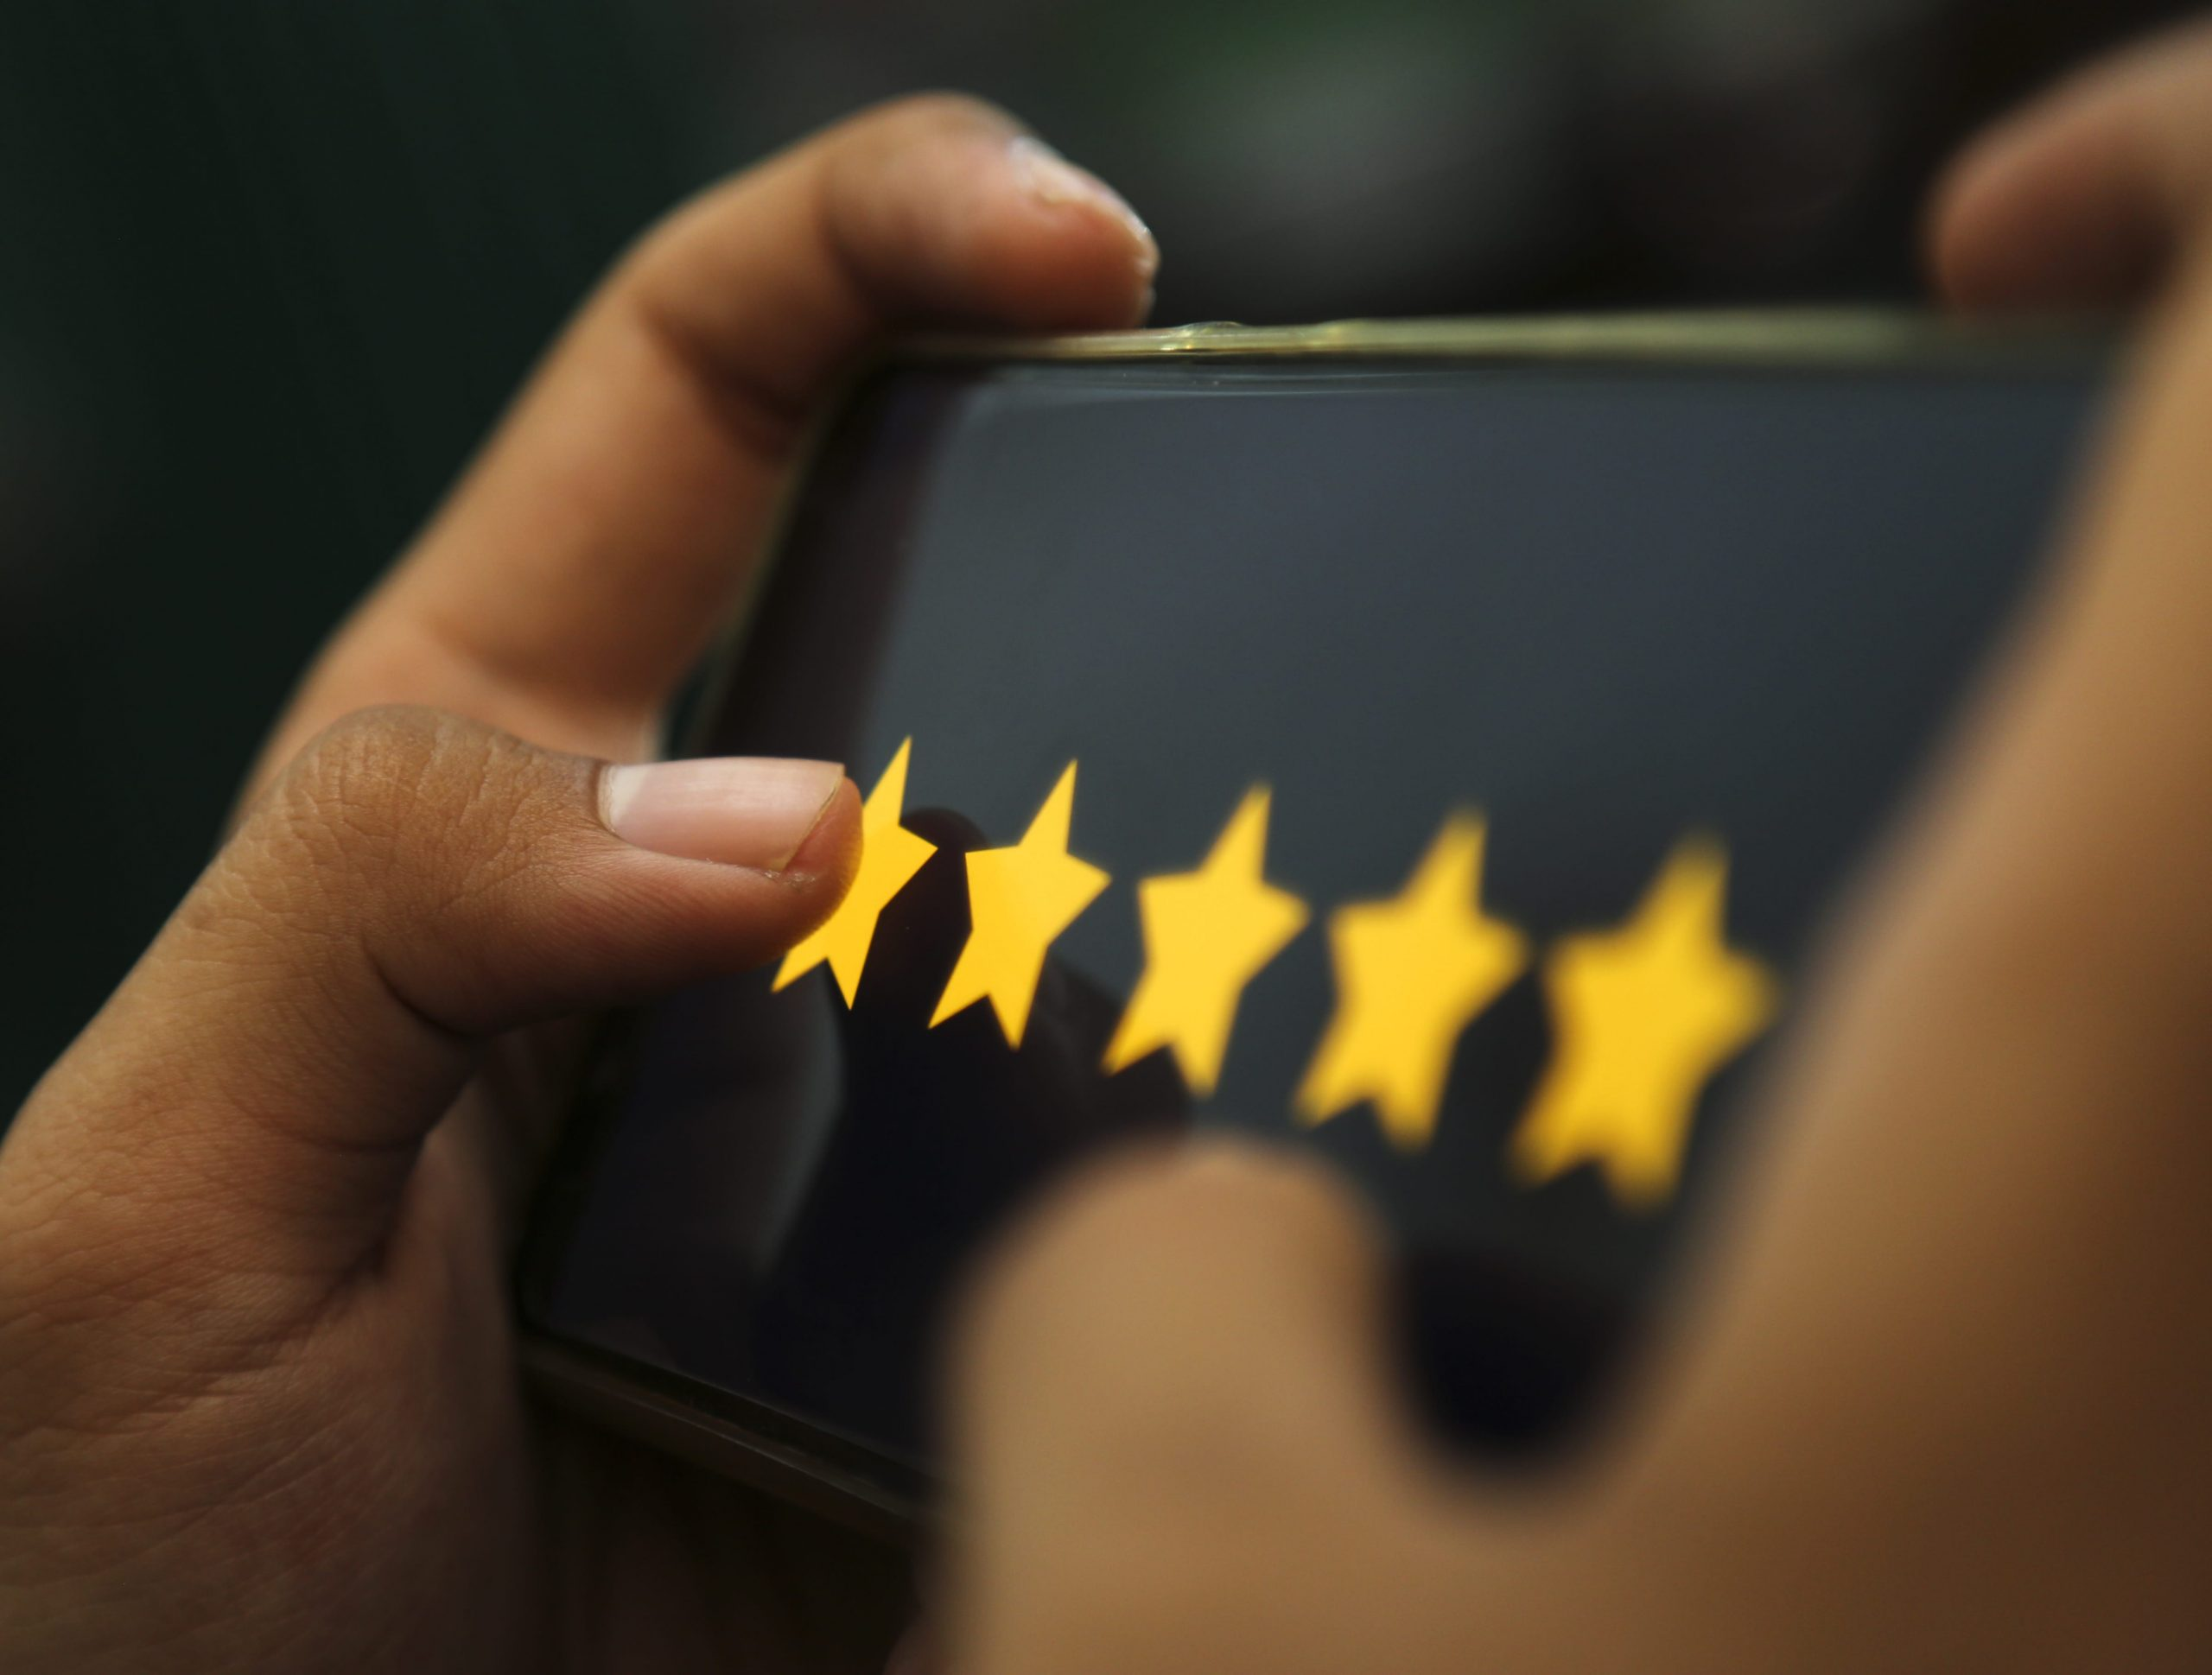 Hands holding a mobile device with five golden stars on its screen